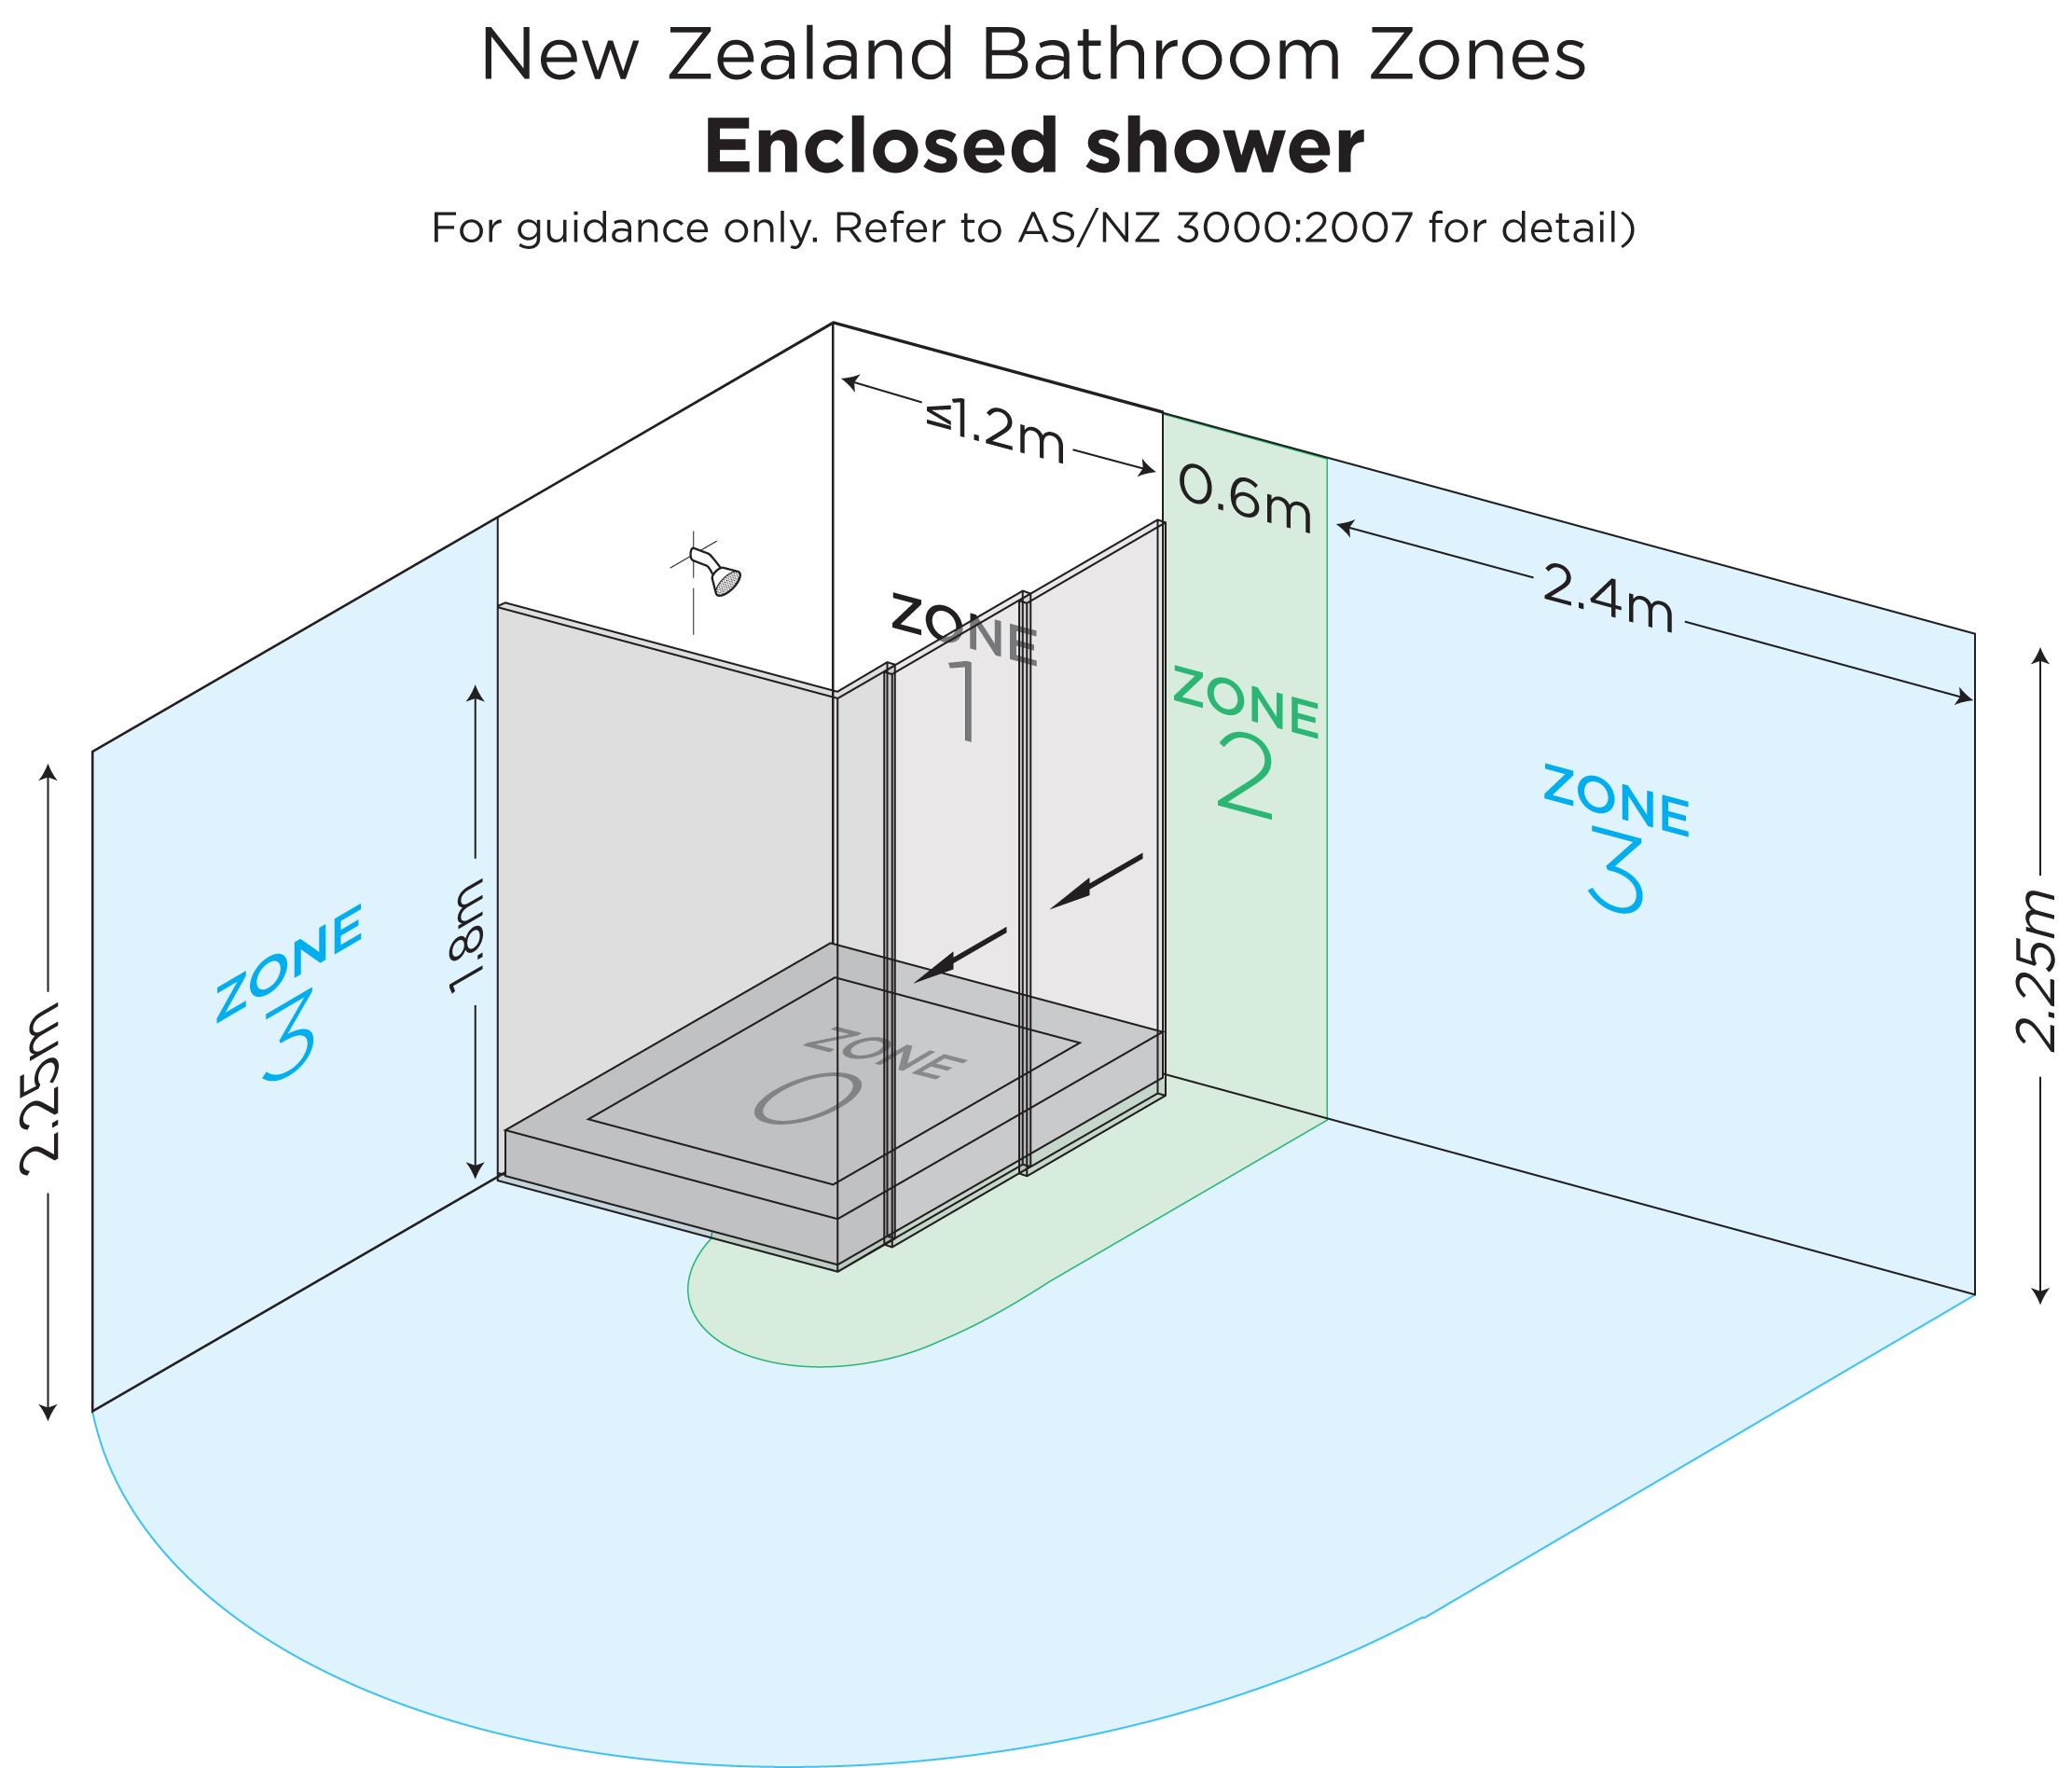 Bathroom Zones on